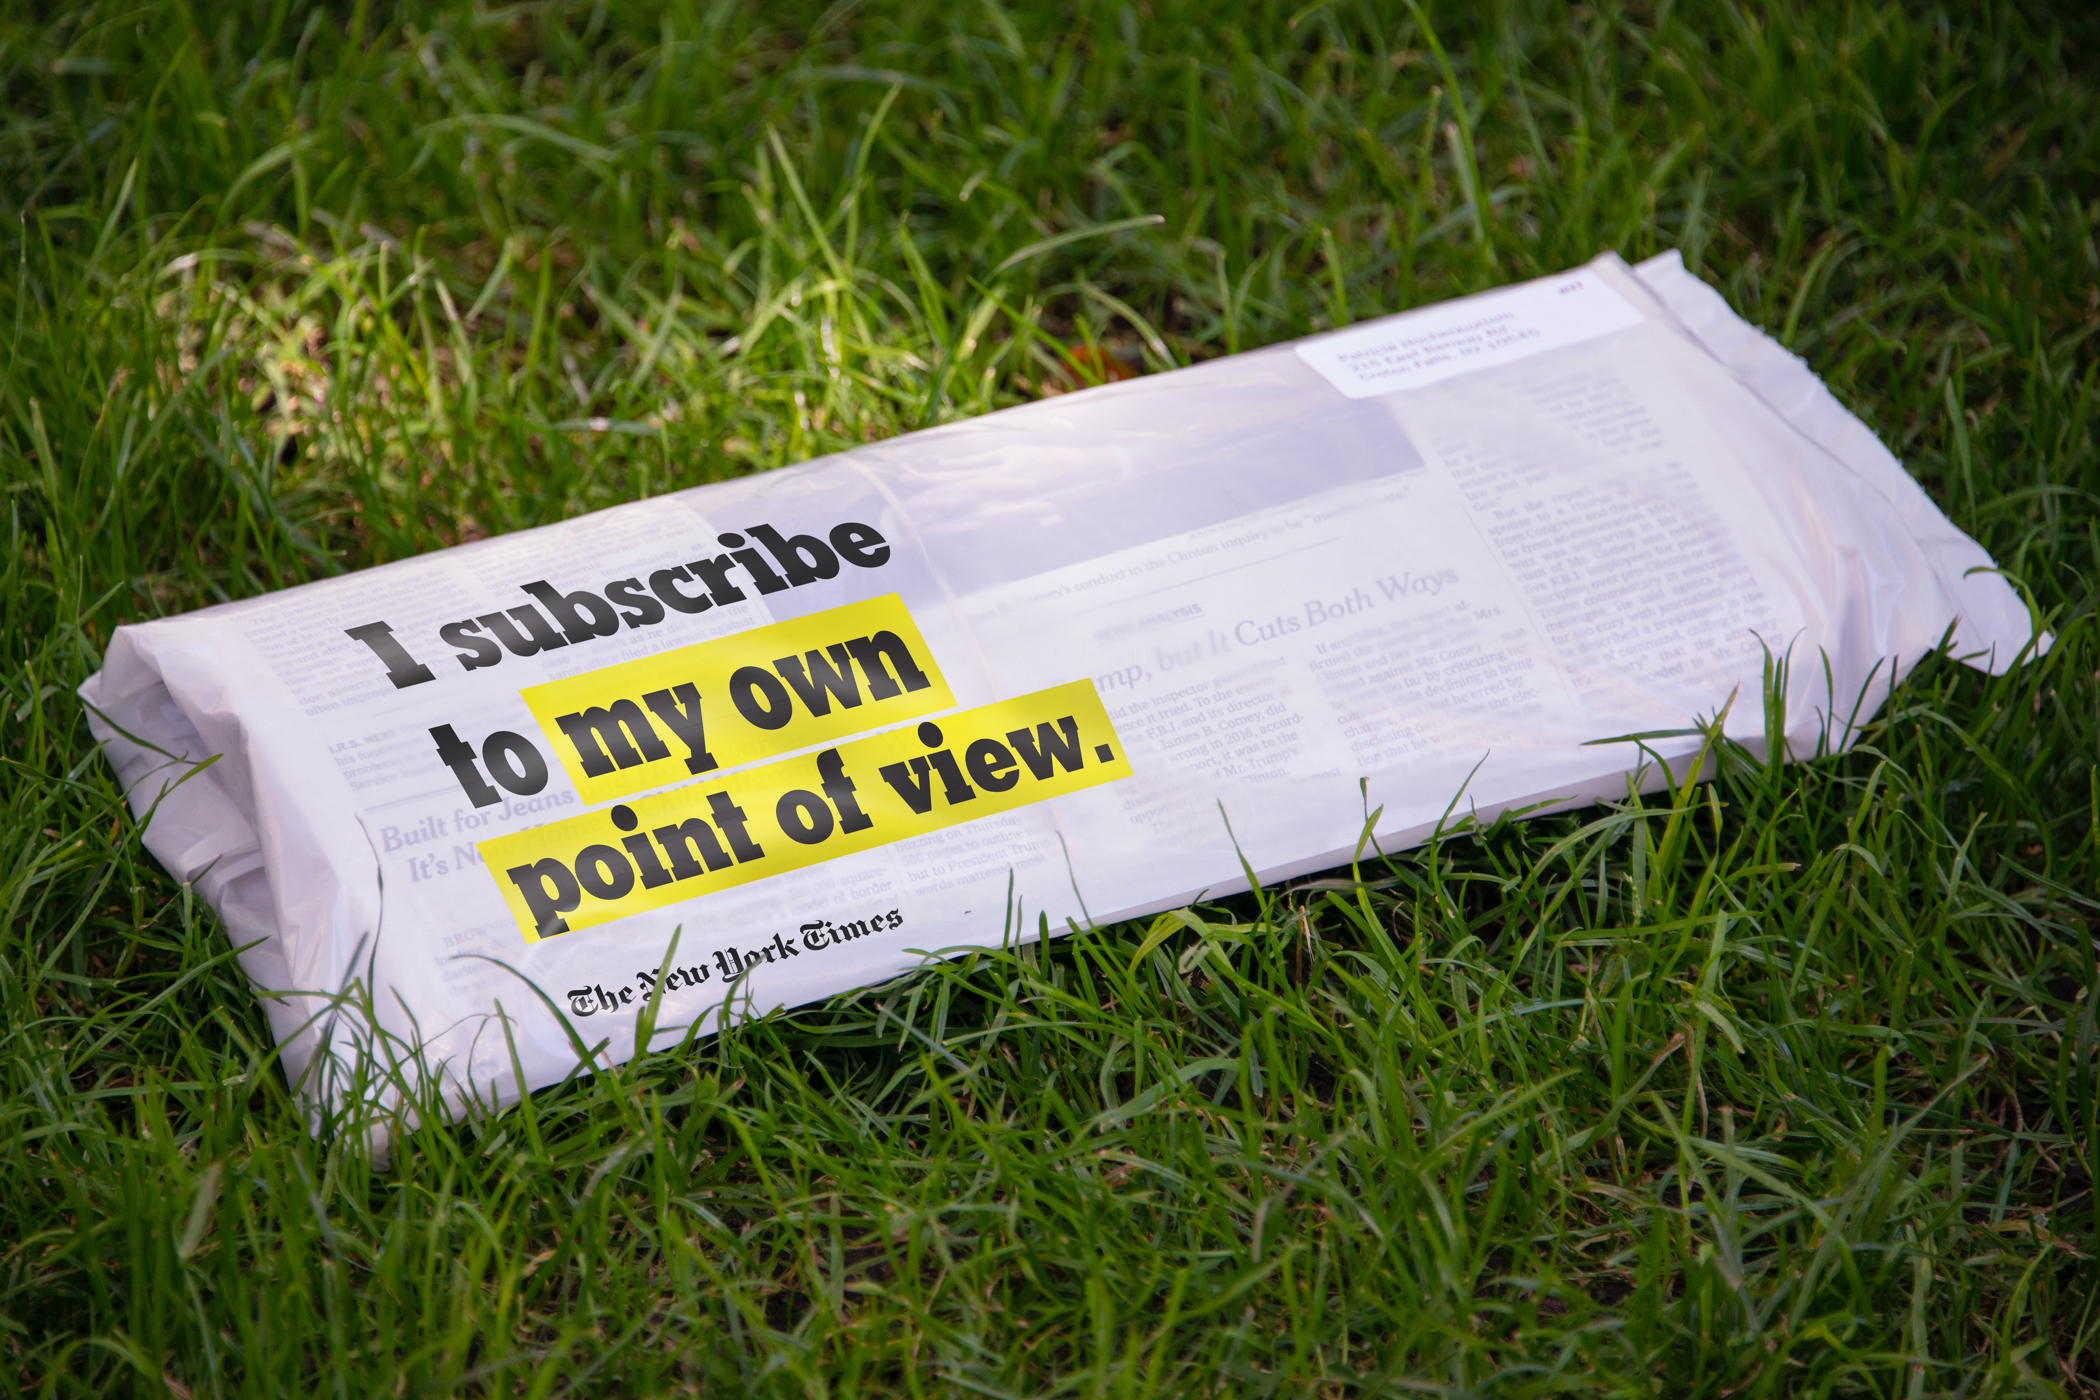 "A New York TImes paper in plastic delivery bag printed with the text ""I subscribe to my own point of view"" on a grassy lawn."